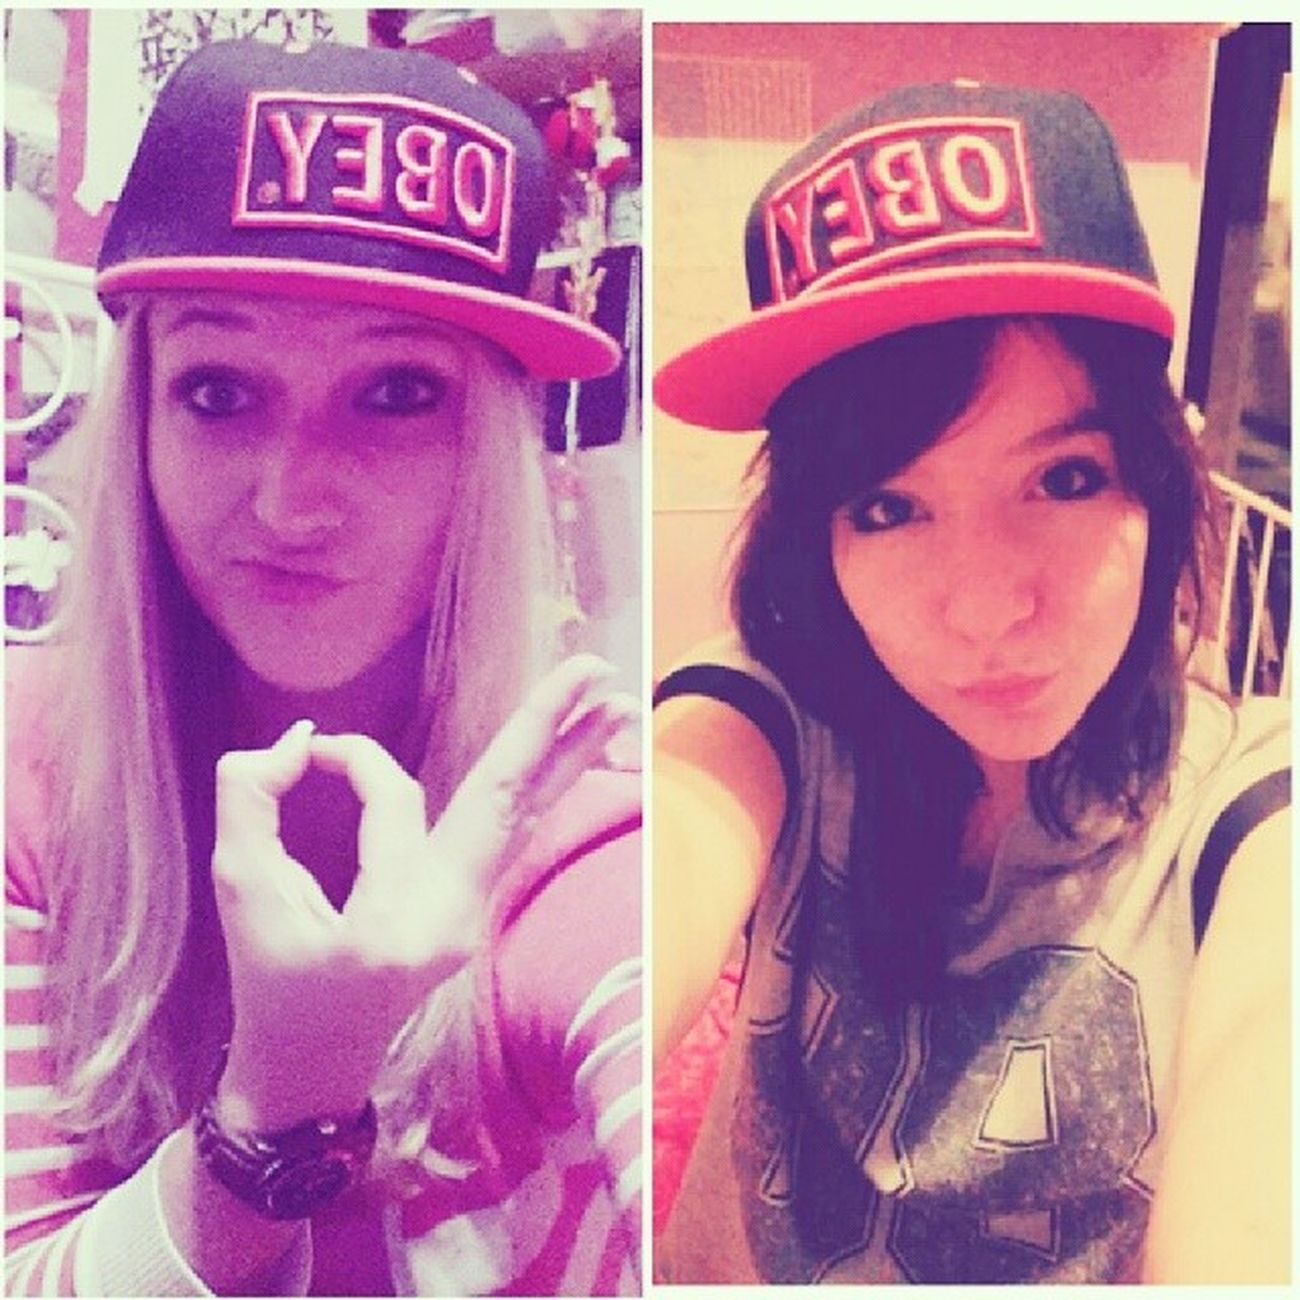 HIPSTER YOLO SWAAAG Mein Mädchen MyGIRL Möchtegern cool yolo hipster swag obey duckface loveyou fun friendship blabla followme like picoftheday 20likes goldstück instalangeweile